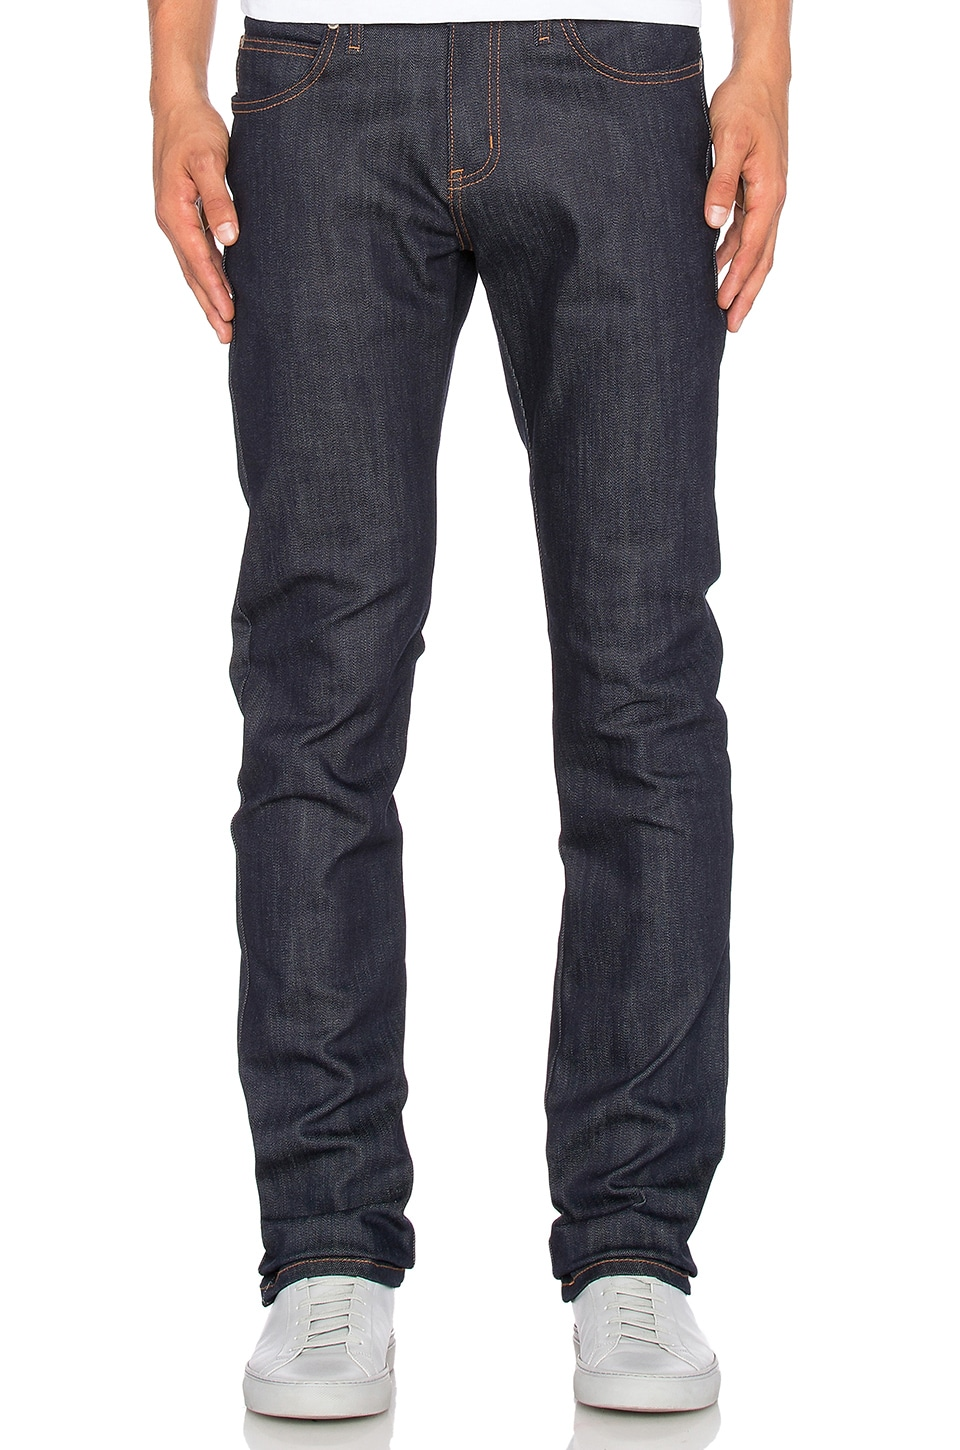 Skinny Guy 12oz. by Naked & Famous Denim